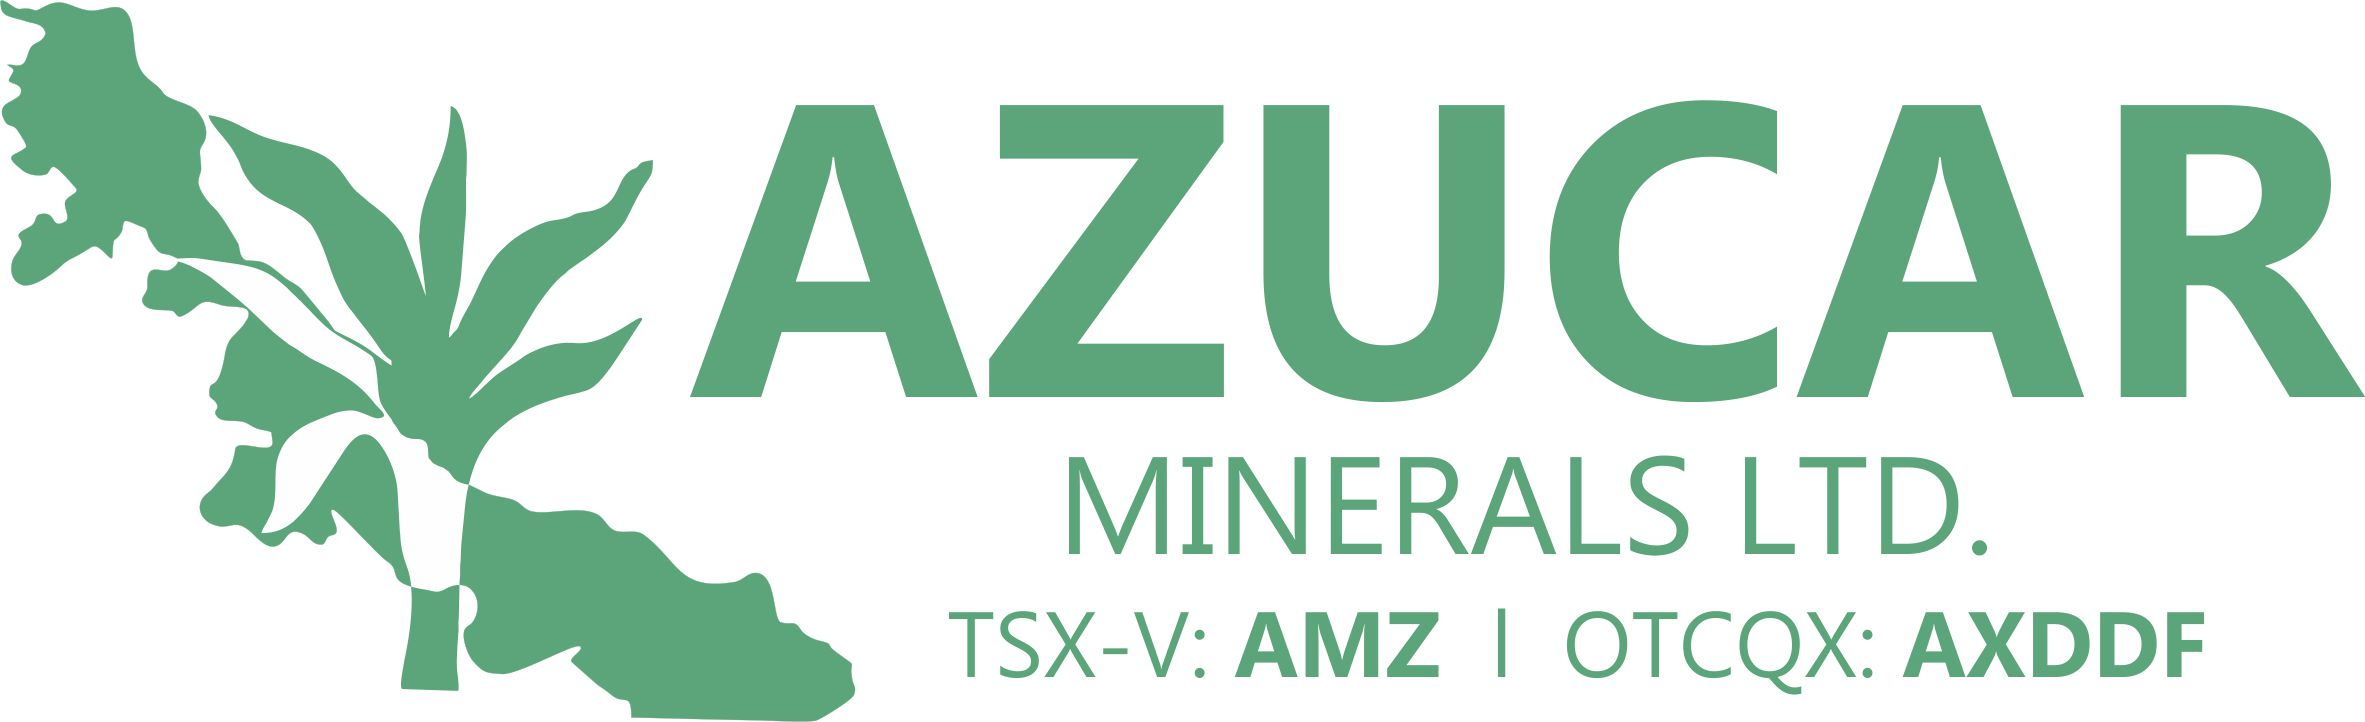 Azucar Announces Mexican Federal Government Issues Decree to Temporarily Suspend All Non-Essential Businesses, Including Mining and Exploration, Until April 30, 2020 Due to COVID-19